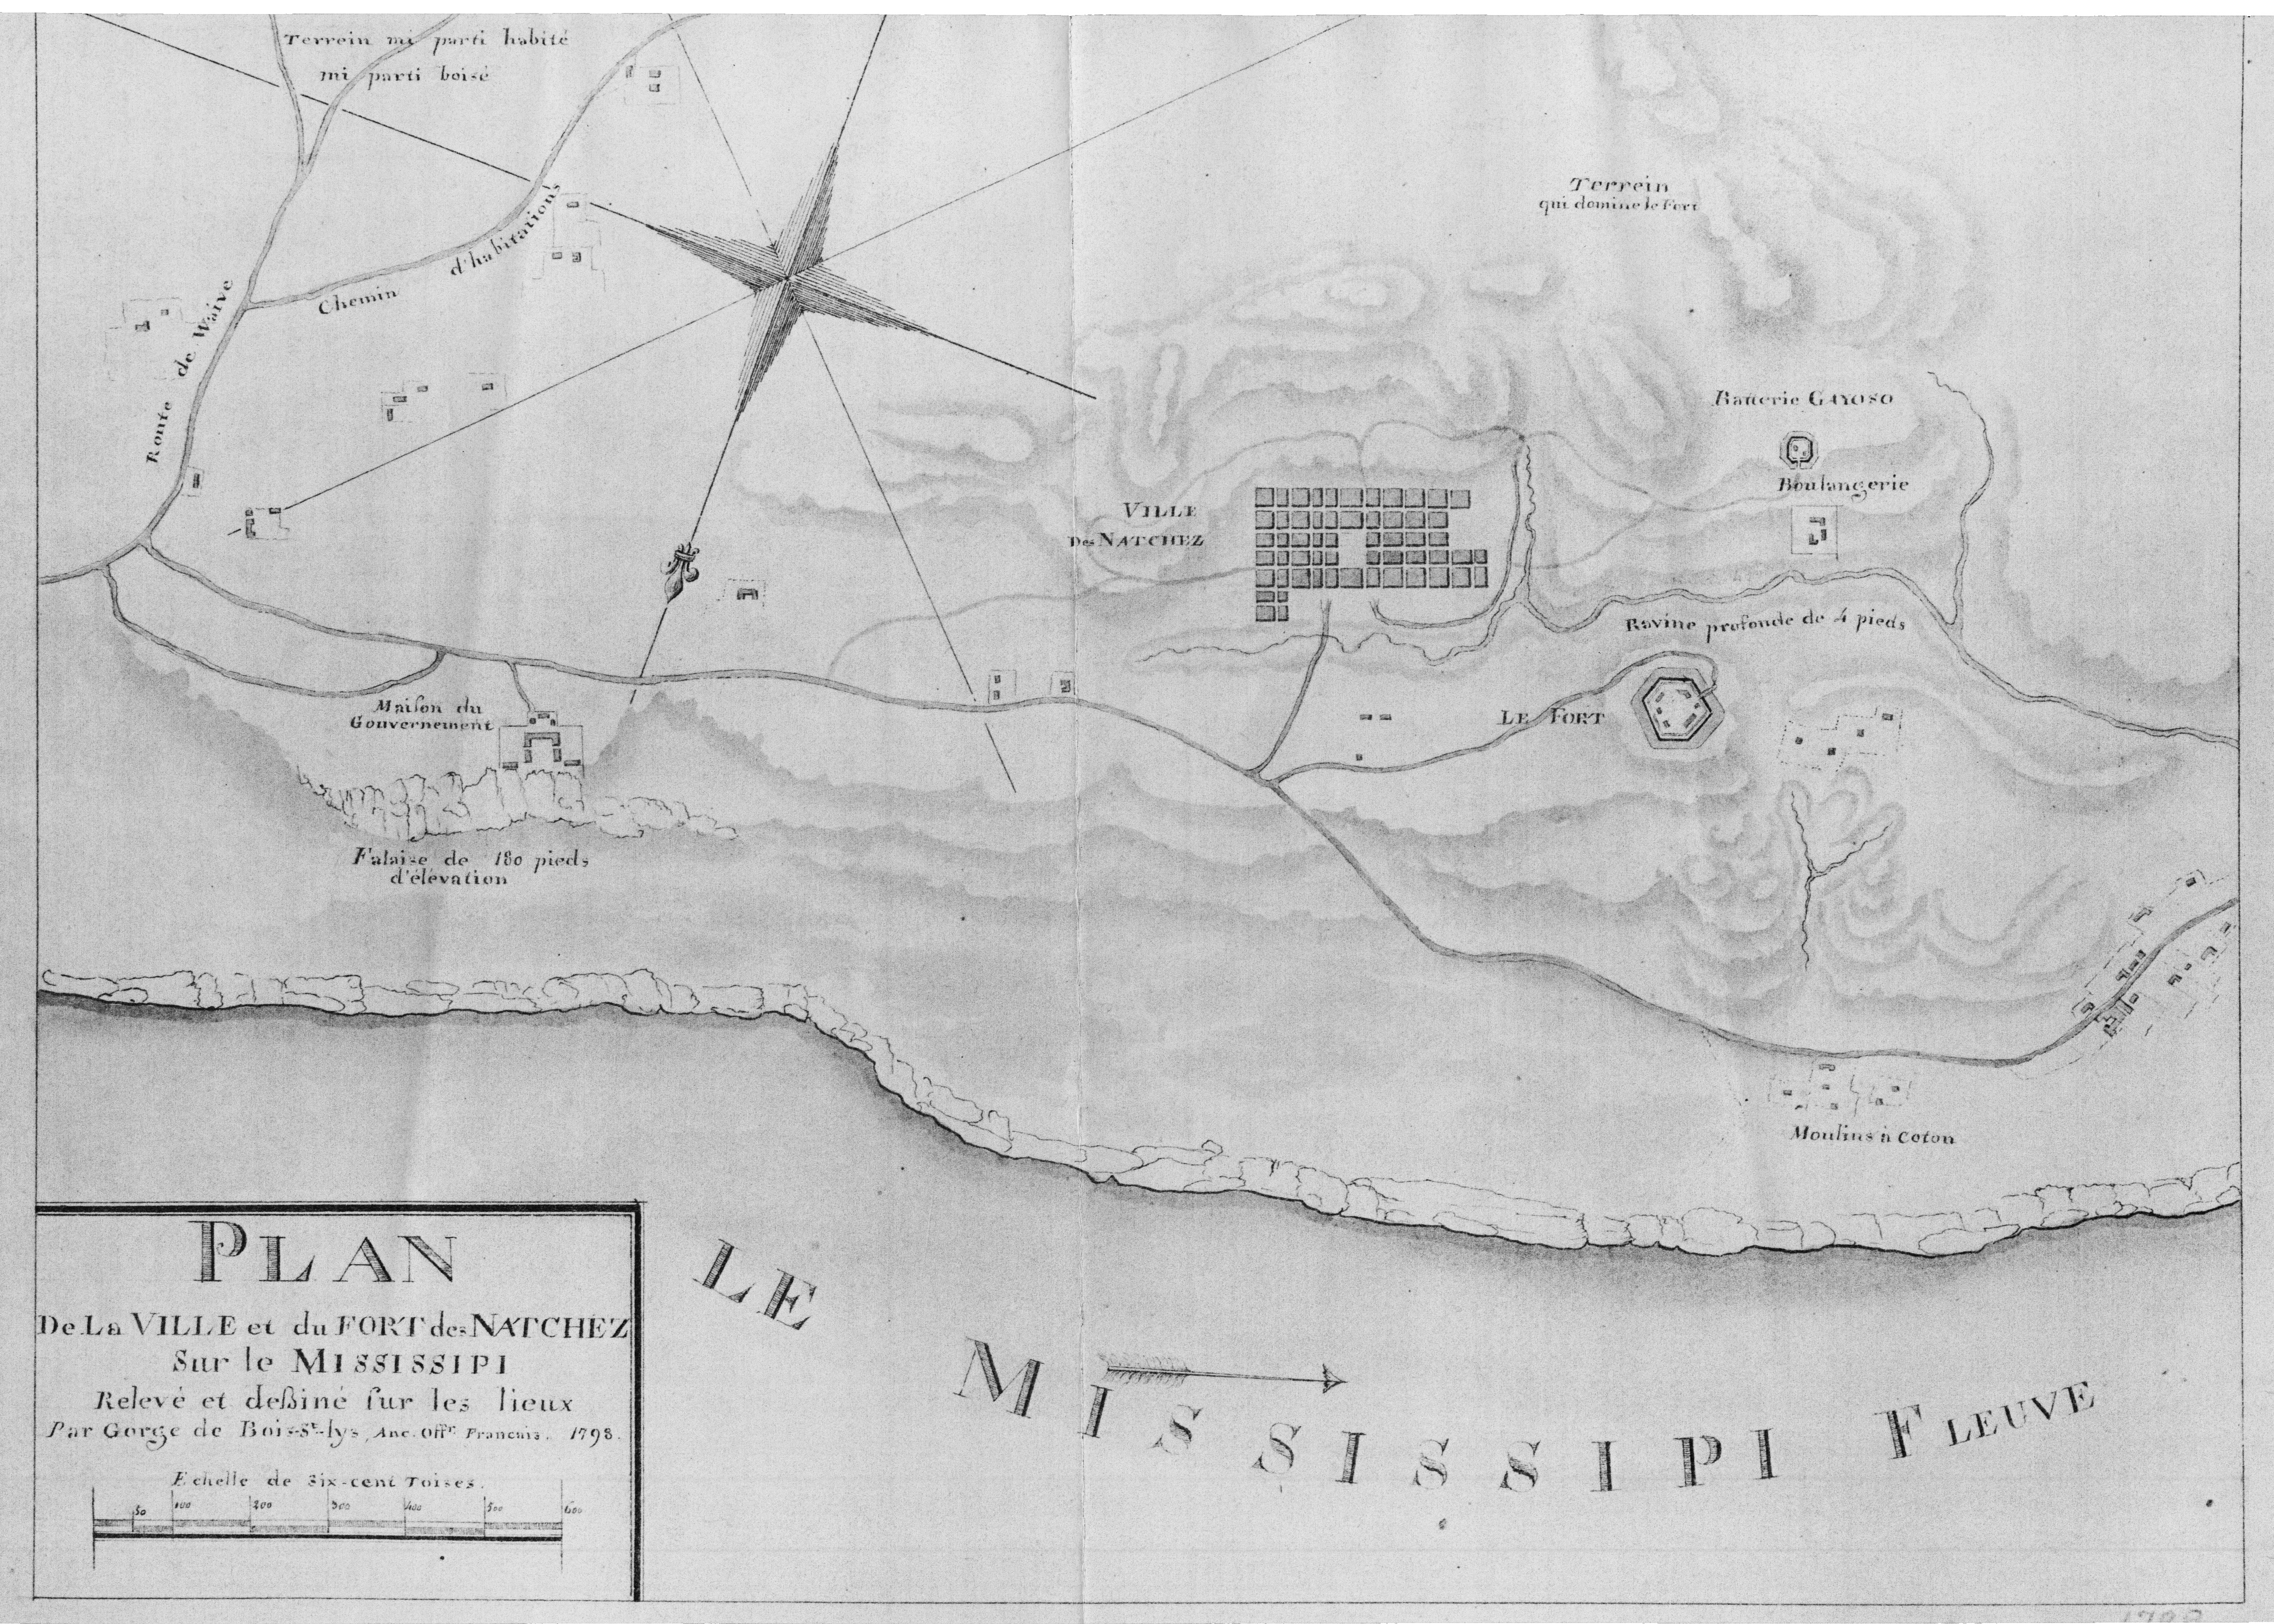 Plan D Etabli Bois early maps of colonial natchez